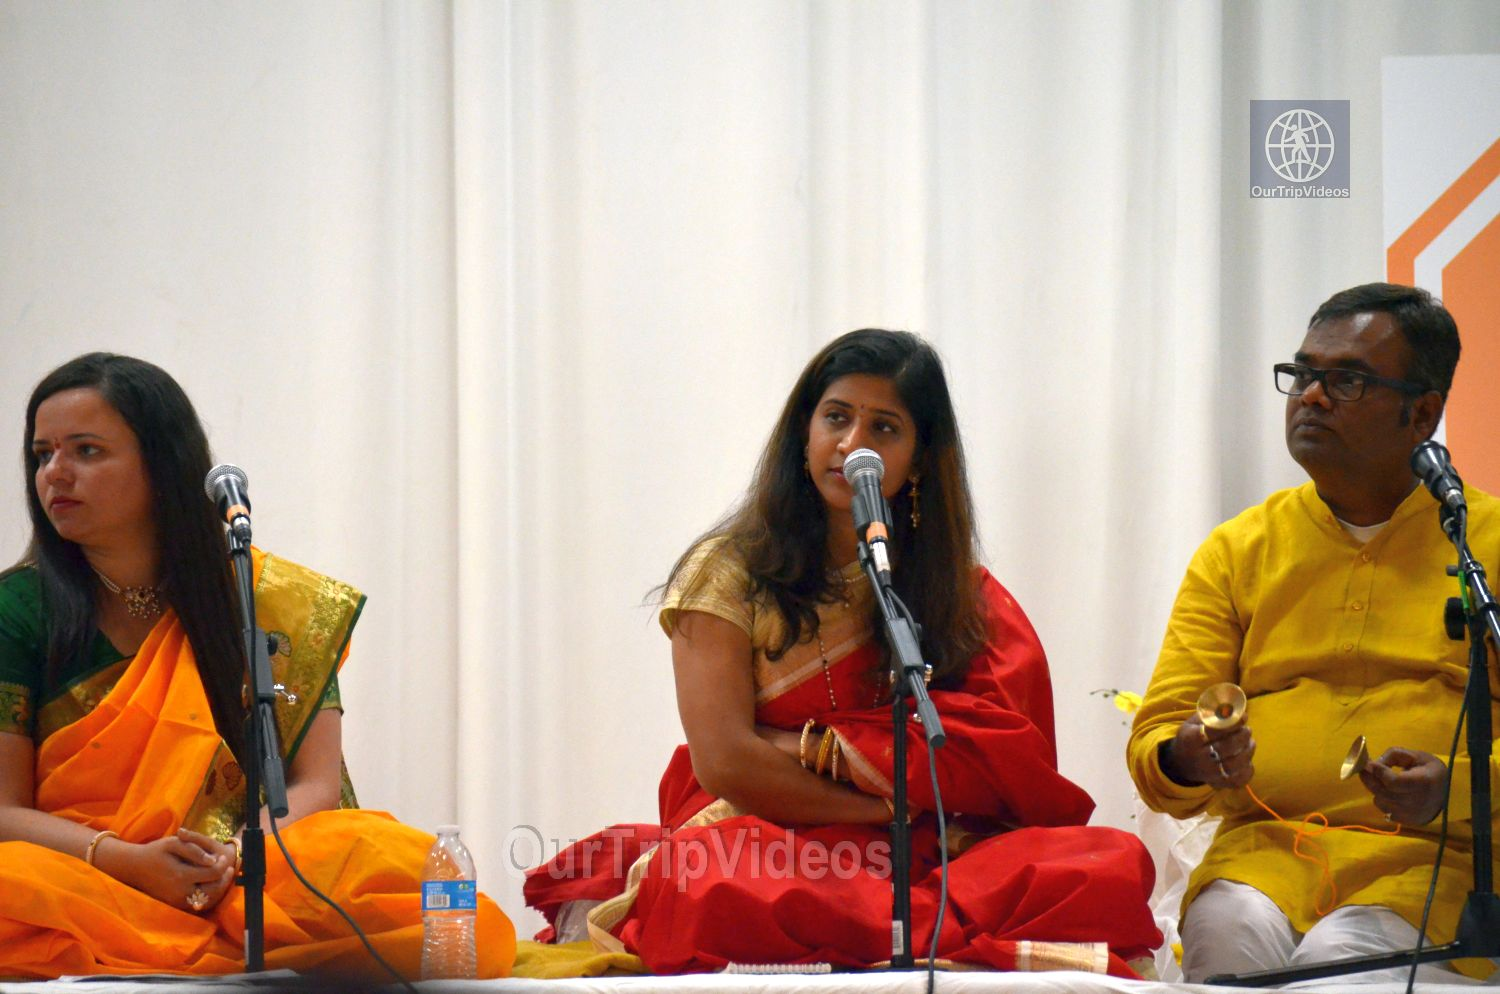 Ganeshotsav by Maharashtra Mandal Bay Area, Milpitas, CA, USA - Picture 5 of 25